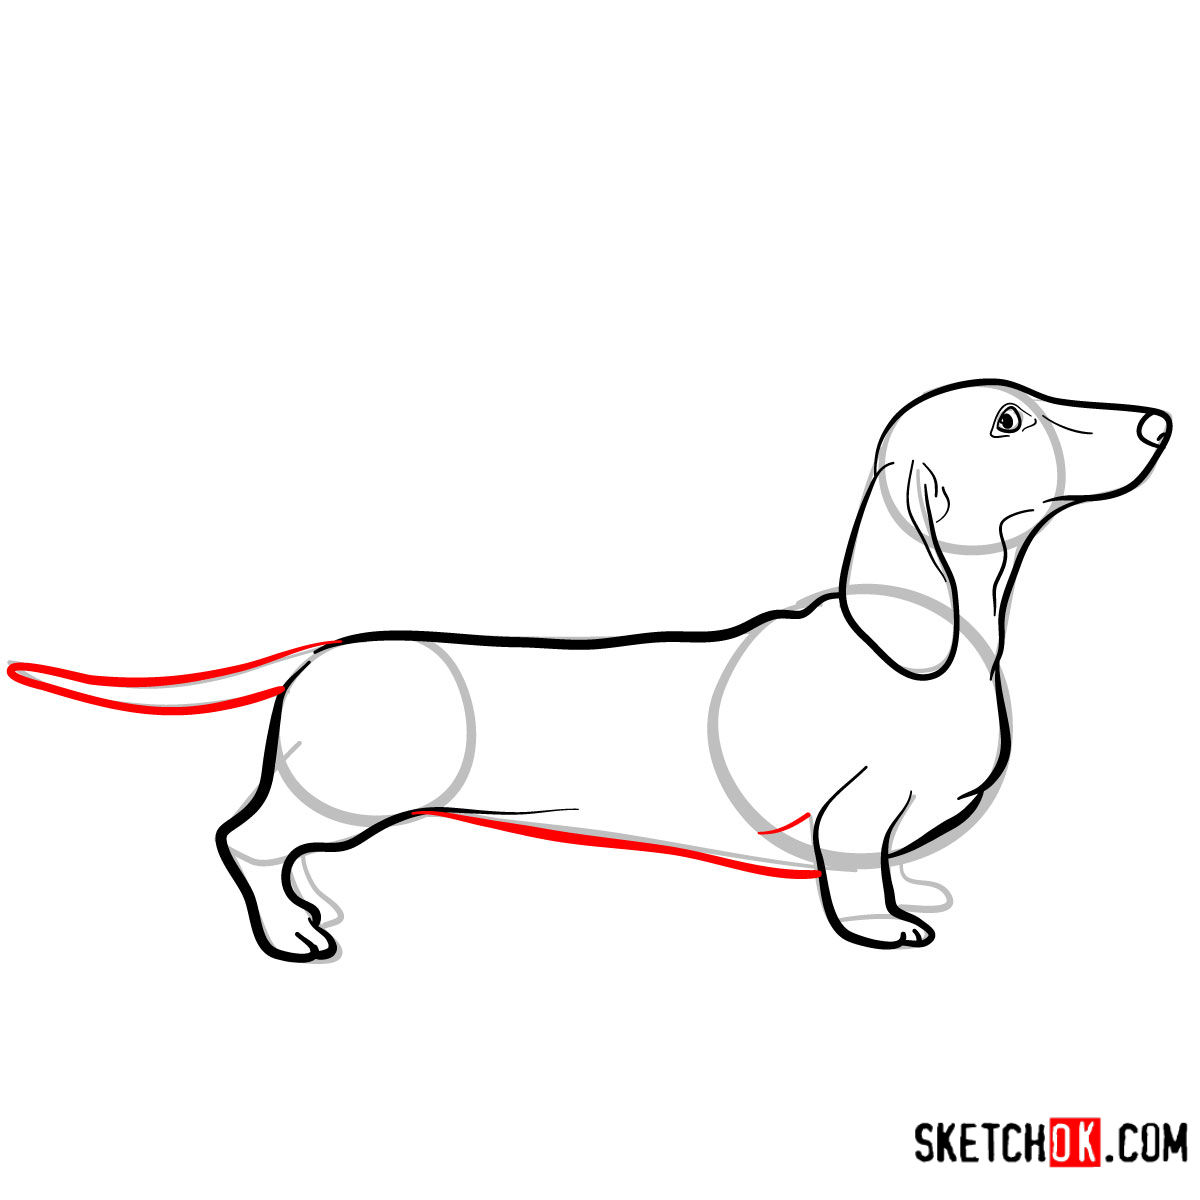 How to draw the Dachshund dog - step 07